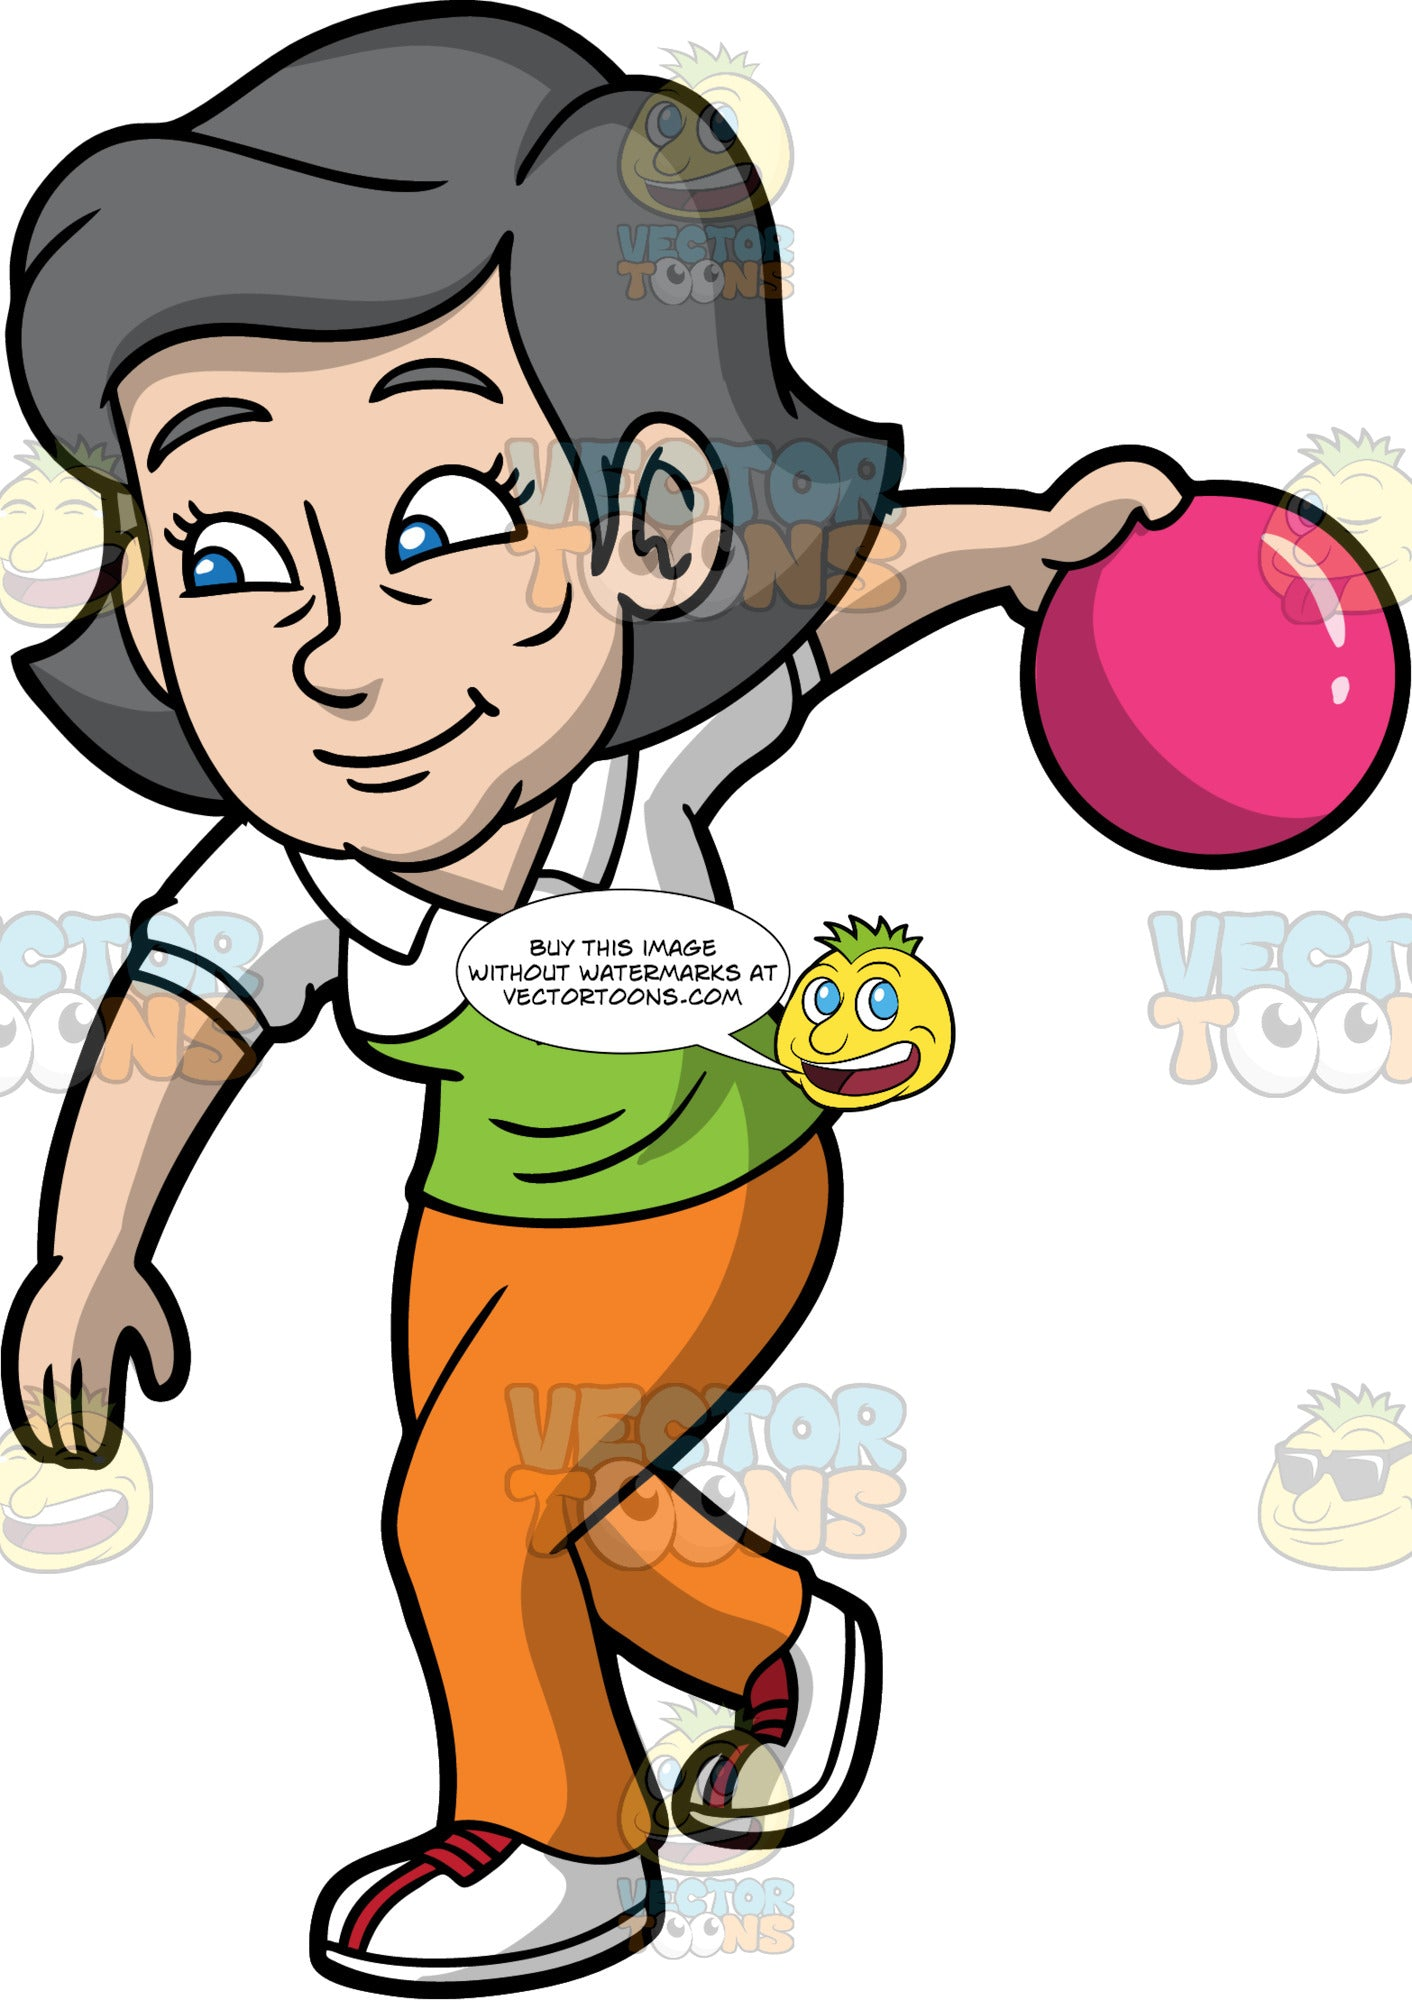 Mary Enjoying A Game Of Bowling. An older woman with gray hair, wearing orange pants, a green and white shirt, and white with red bowling shoes, getting ready to throw a pink bowling ball down the lane